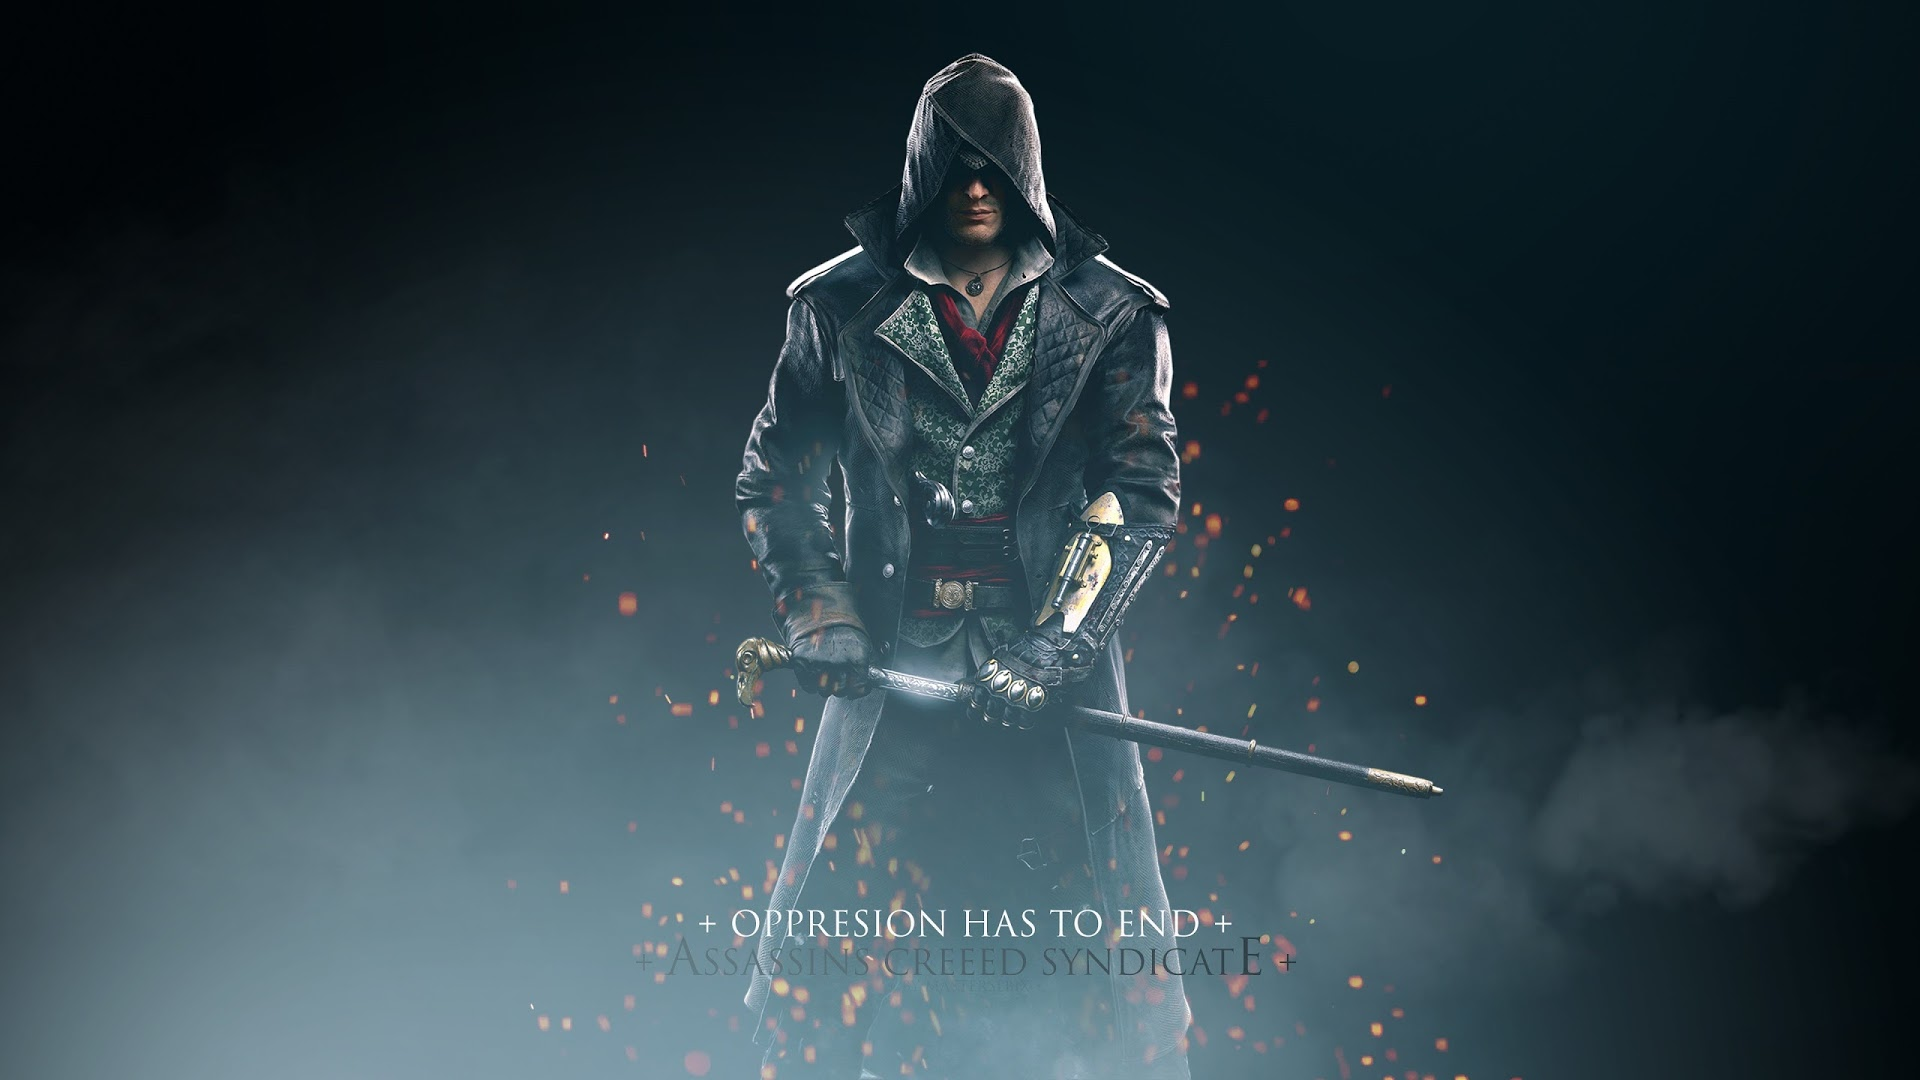 Free Download Assassins Creed Syndicate Hd Wallpapers 4k